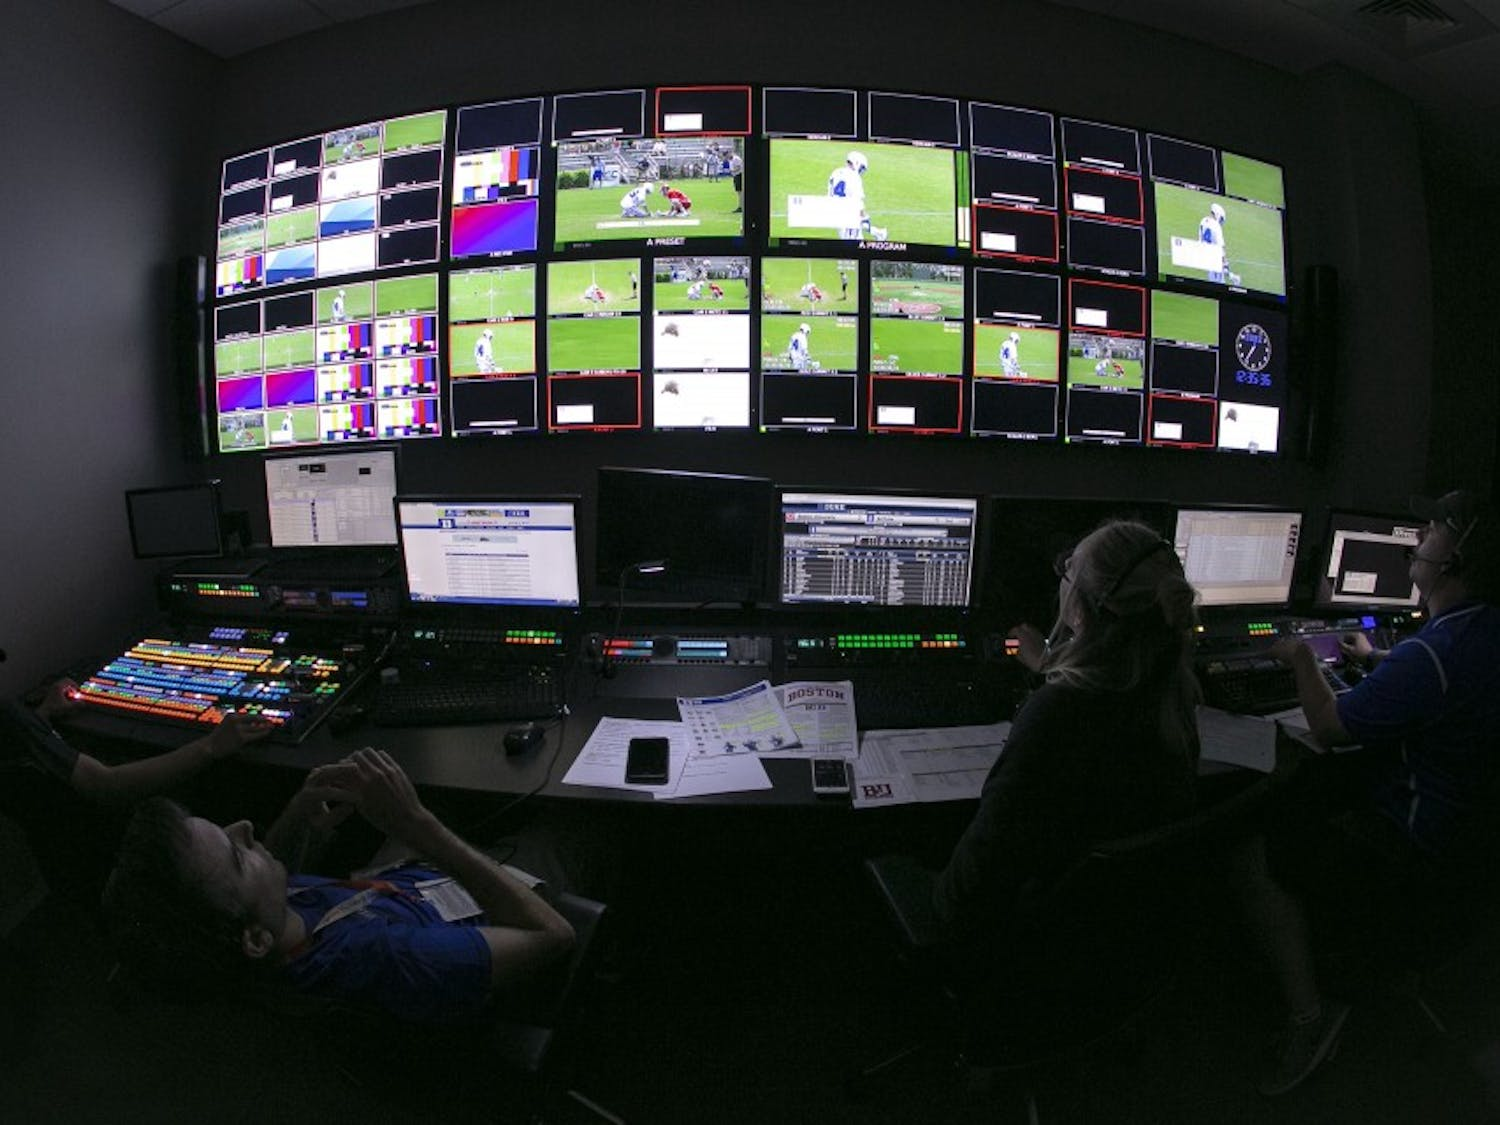 A look from inside one of the three new control rooms in Blue Devil Tower during a men's lacrosse broadcast.